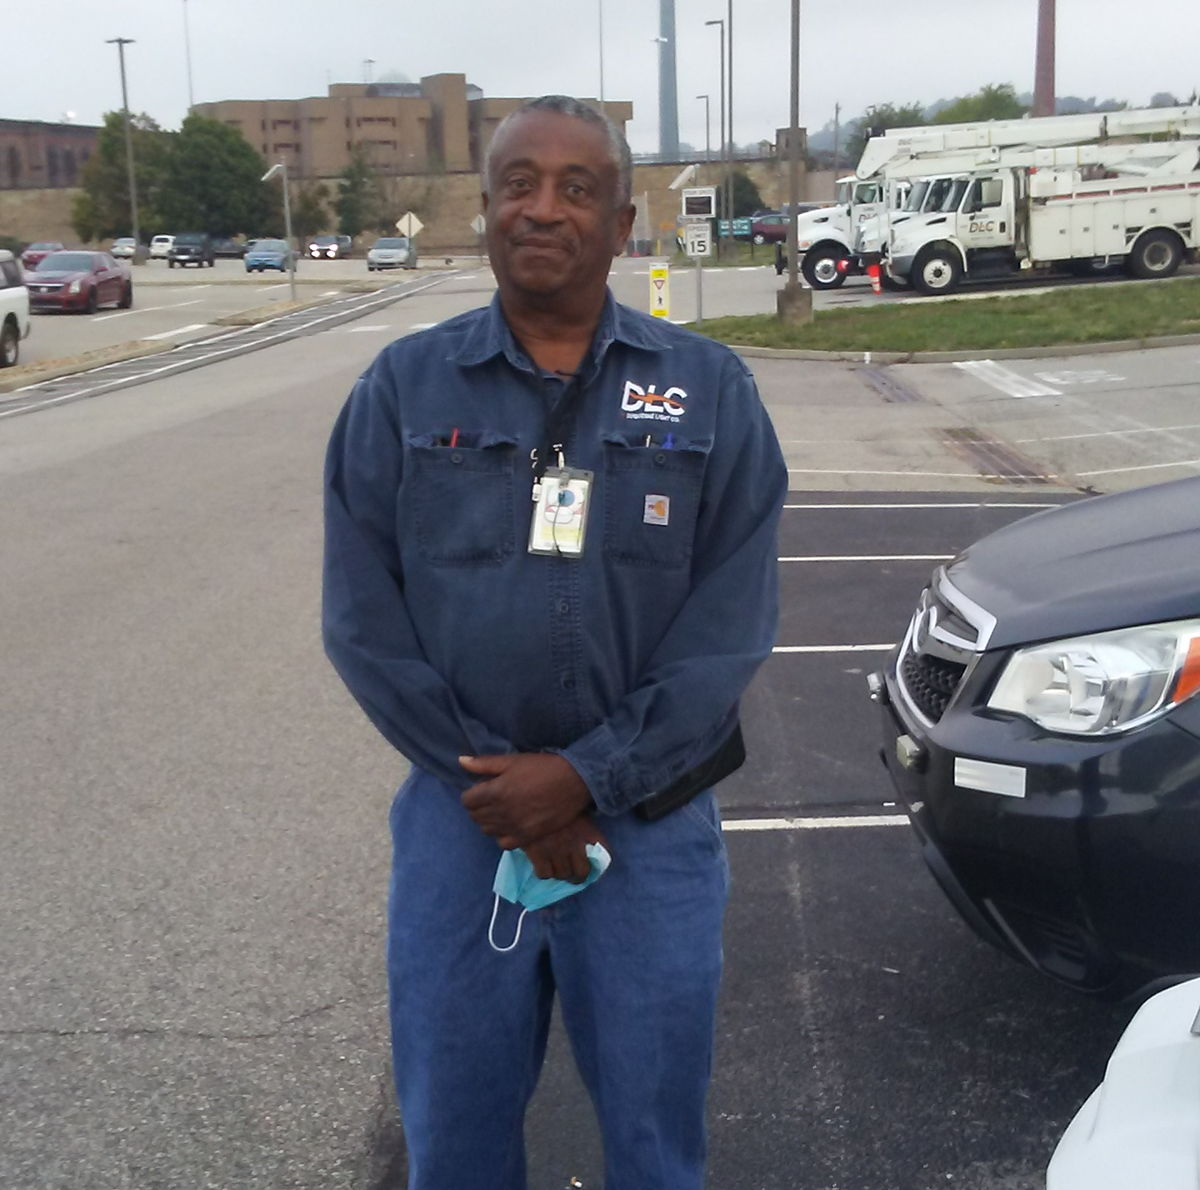 Ron Love, a mobile test technician at DLC, went above and beyond to help a customer resolve a safety issue.